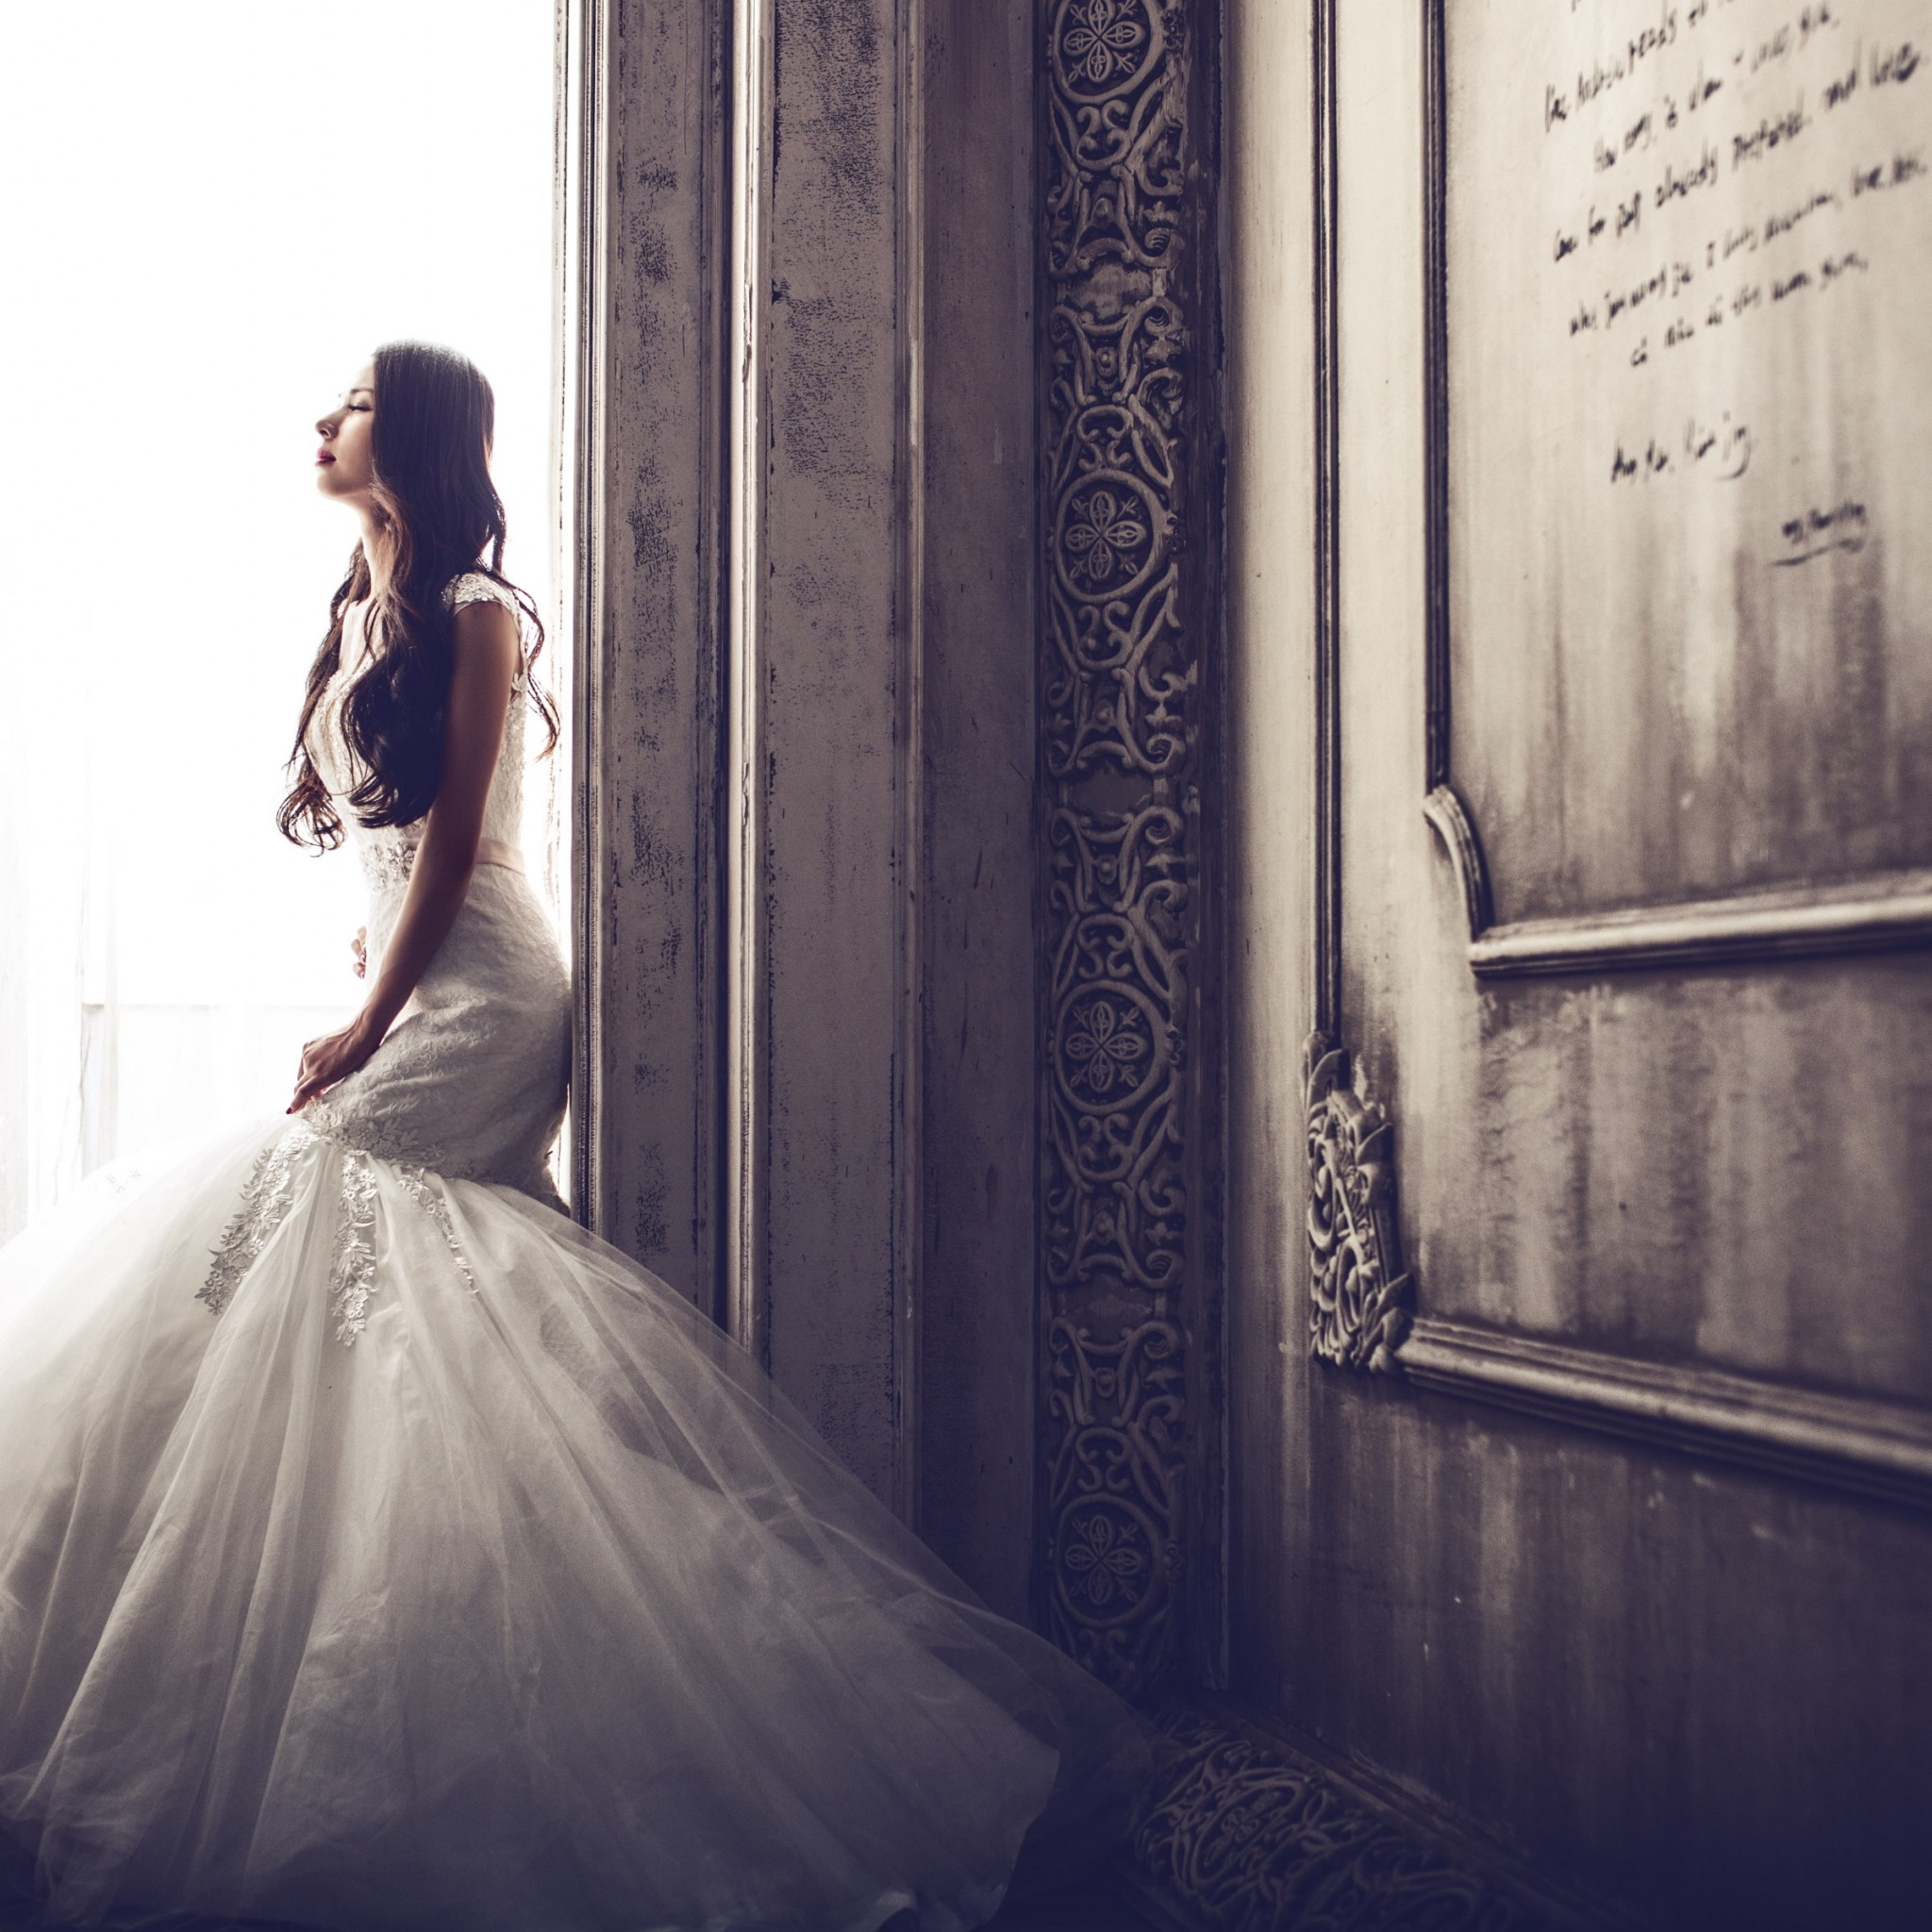 Bride in castle wallpaper 2048x2048